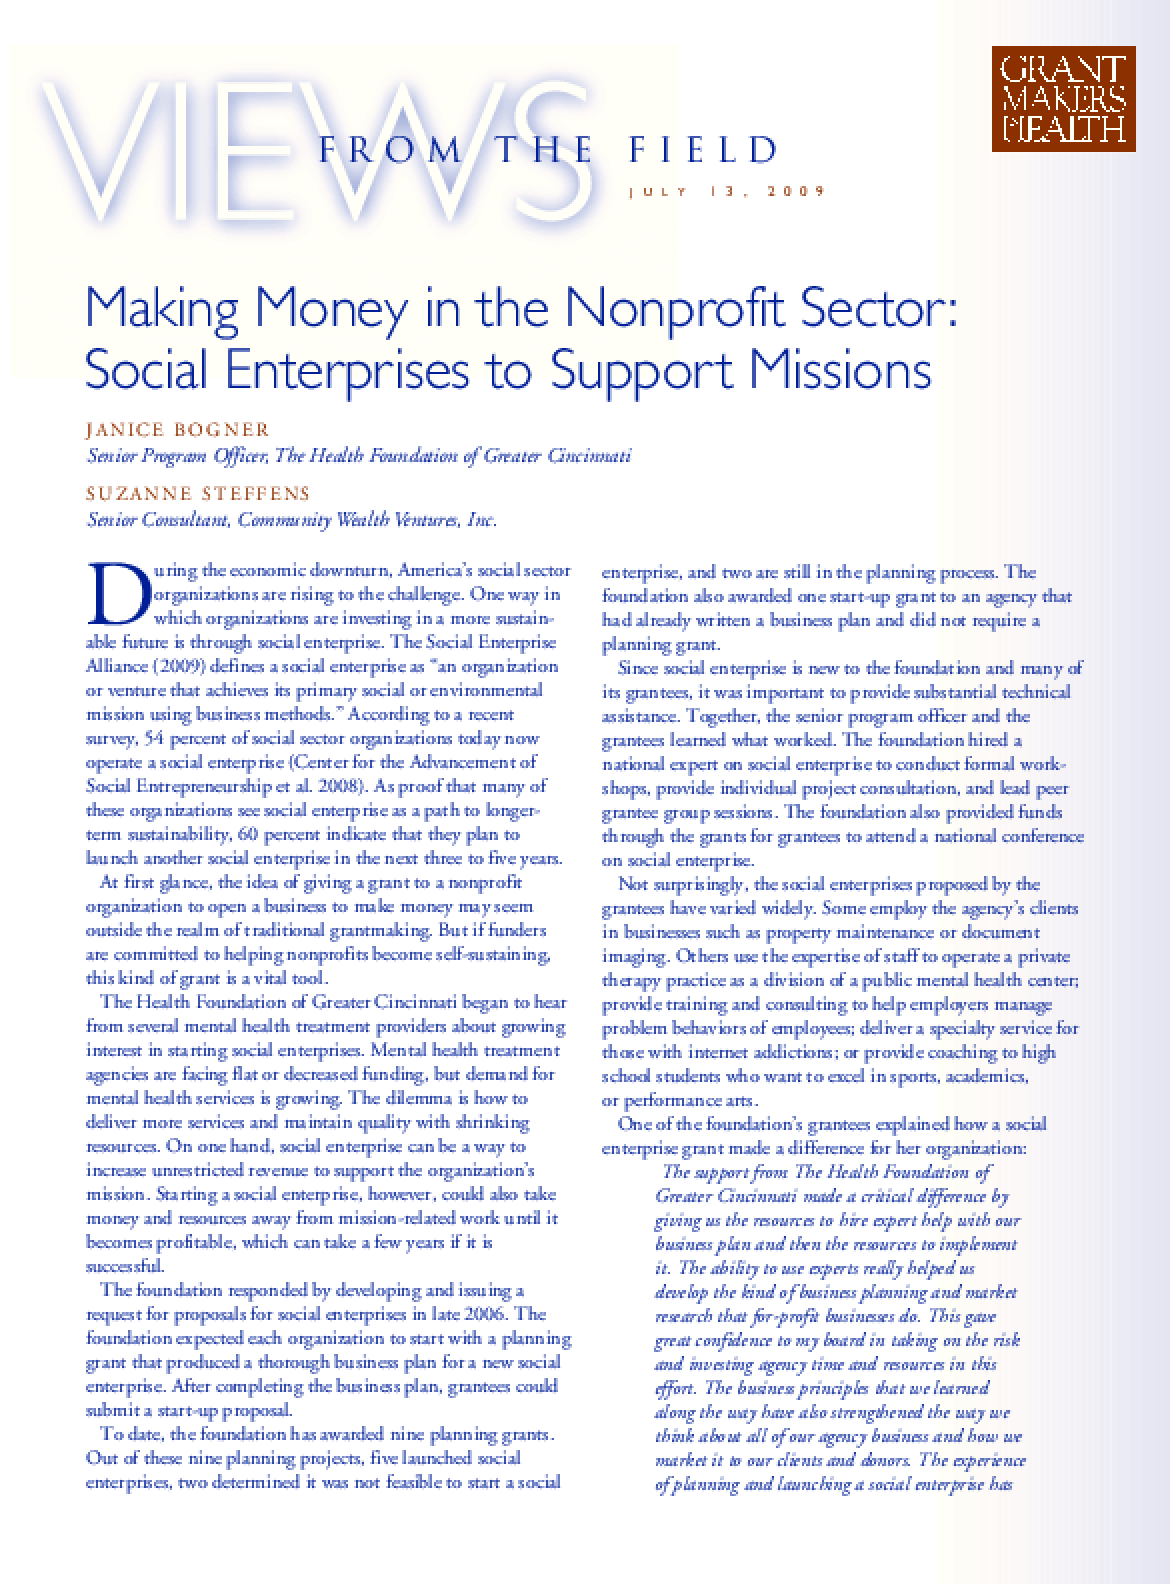 Making Money in the Nonprofit Sector: Social Enterprises to Support Missions